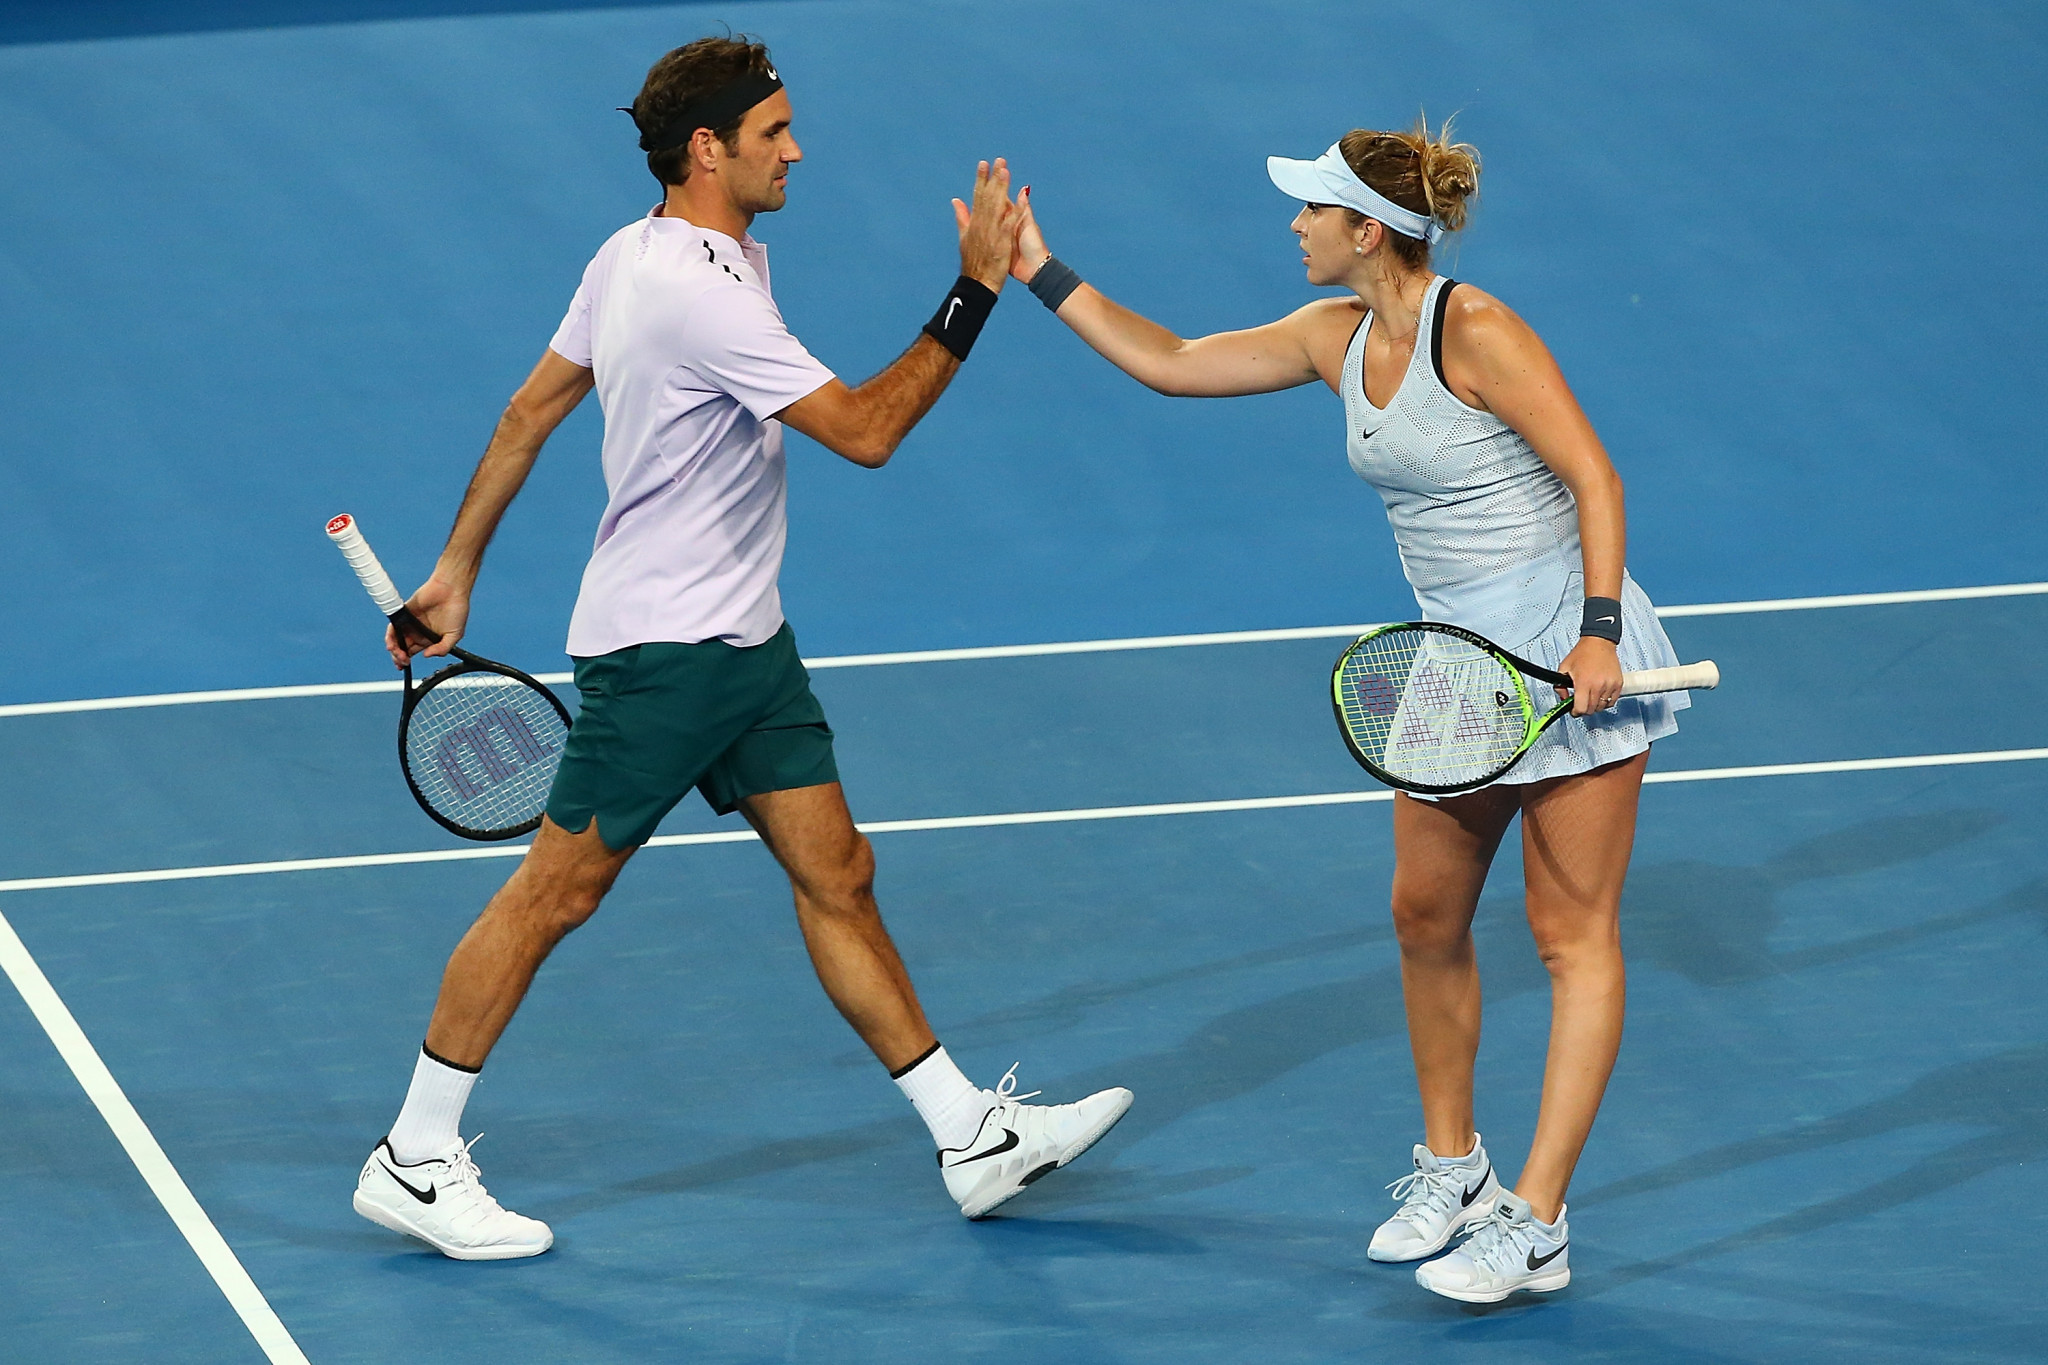 Roger Federer and Belinda Bencic have qualified for the final of the Hopman Cup after three victories today ©Getty Images